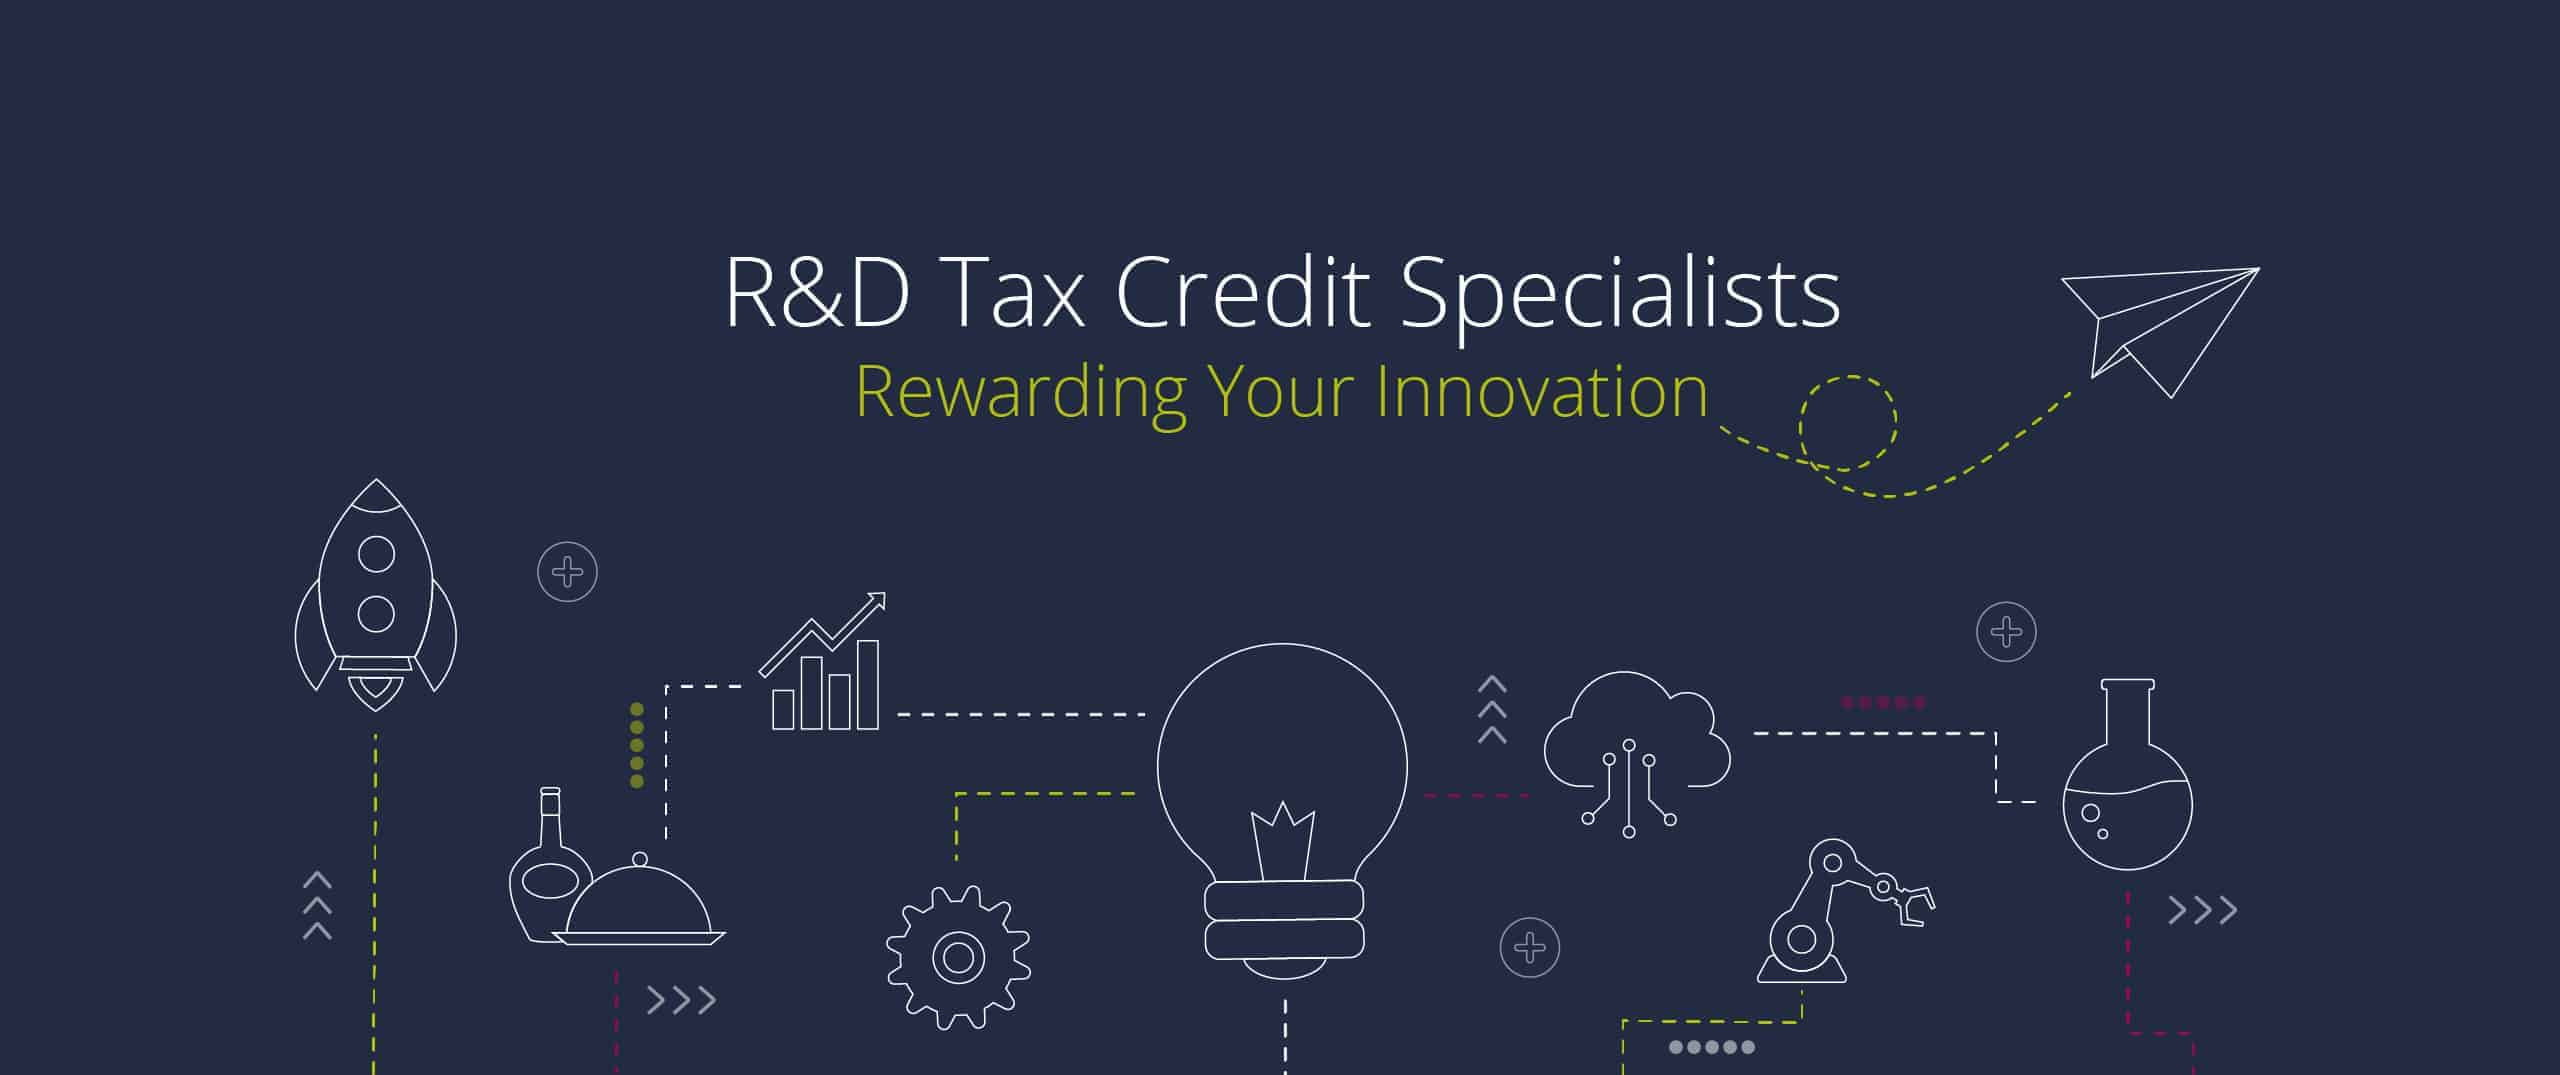 R&D Tax Credit Specialists